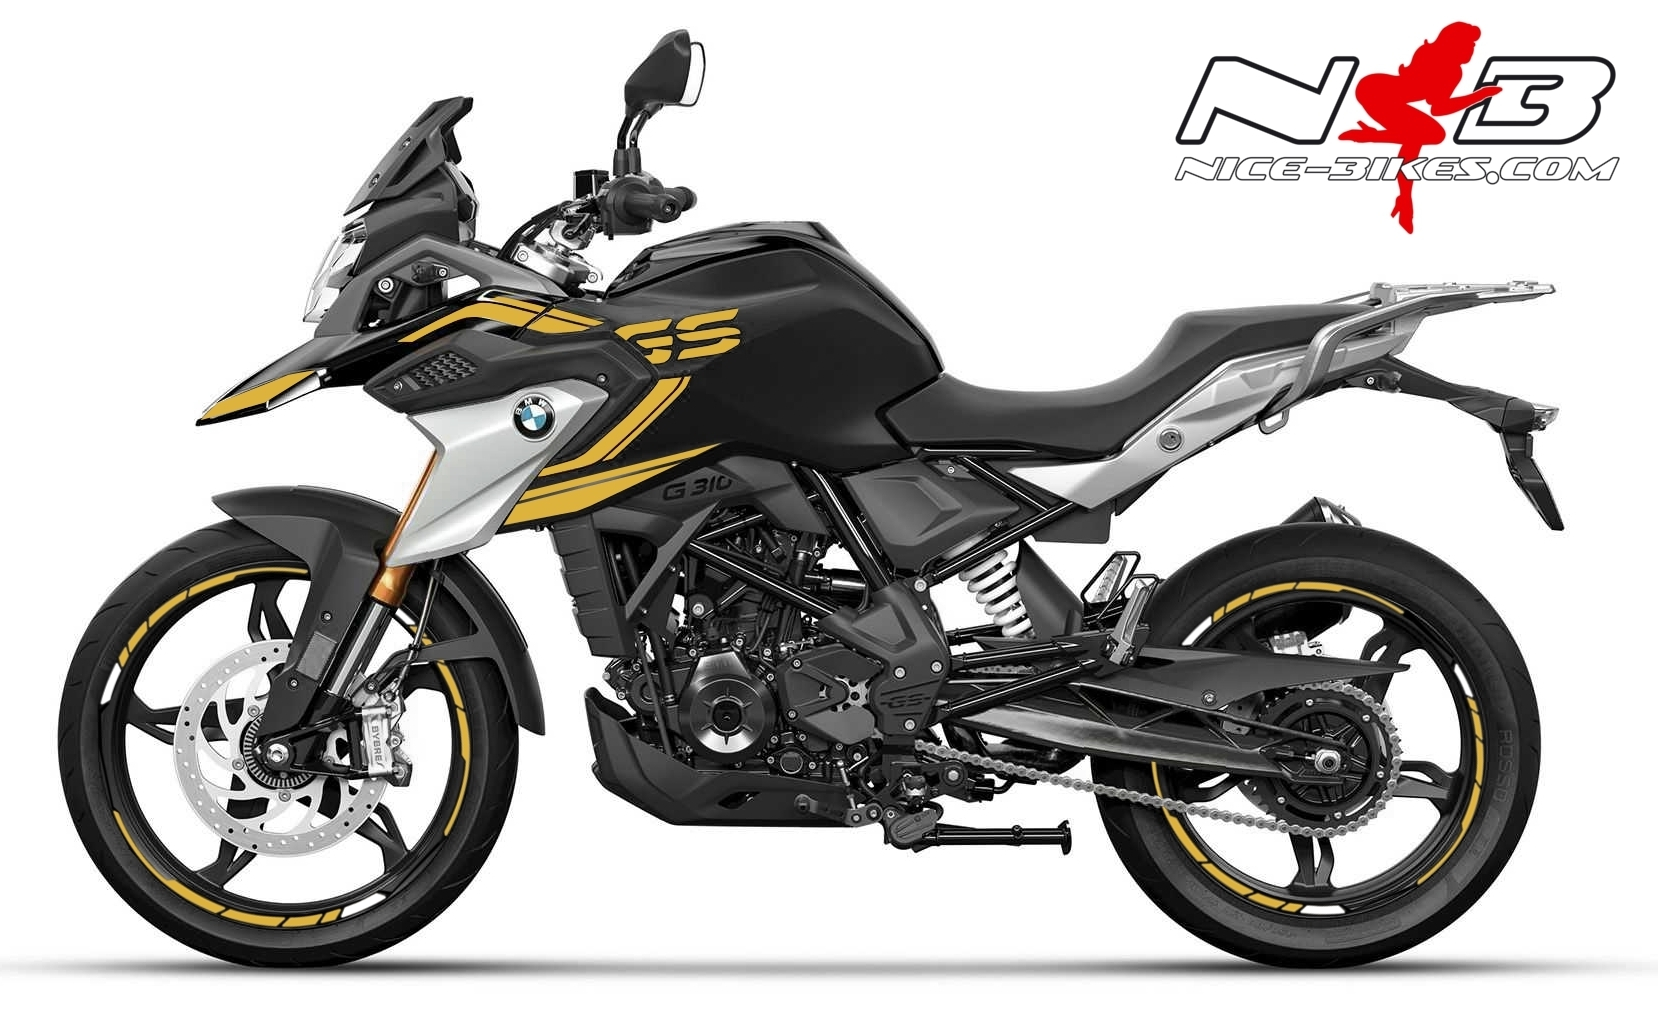 Foliendesign BMW G310GS 2021 Olympic Gold